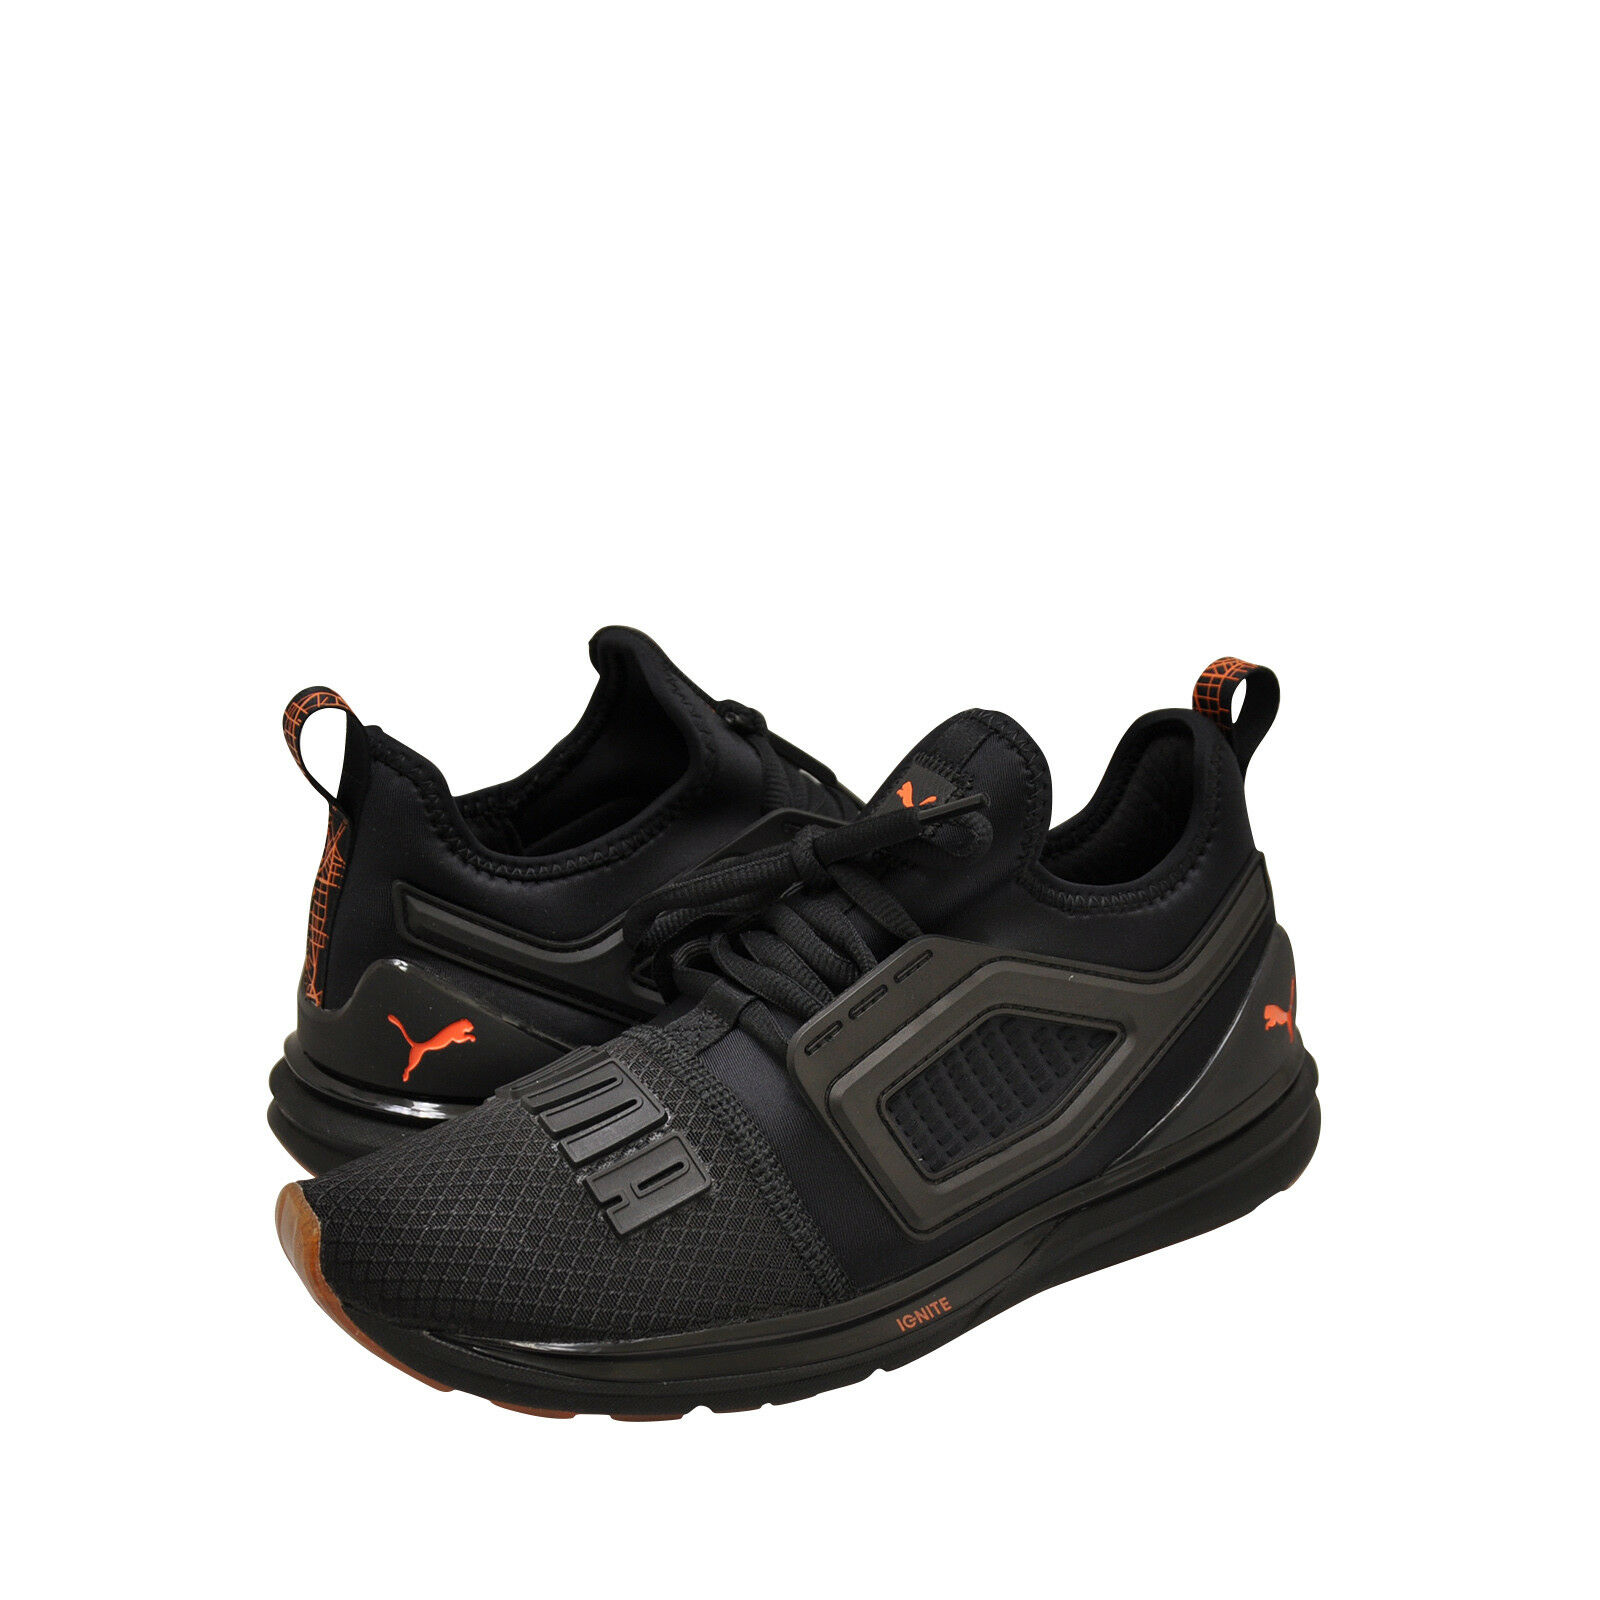 Men's Shoes PUMA Ignite Limitless 2 Unrest 191295-02 PUMA Black *NEW* best-selling model of the brand